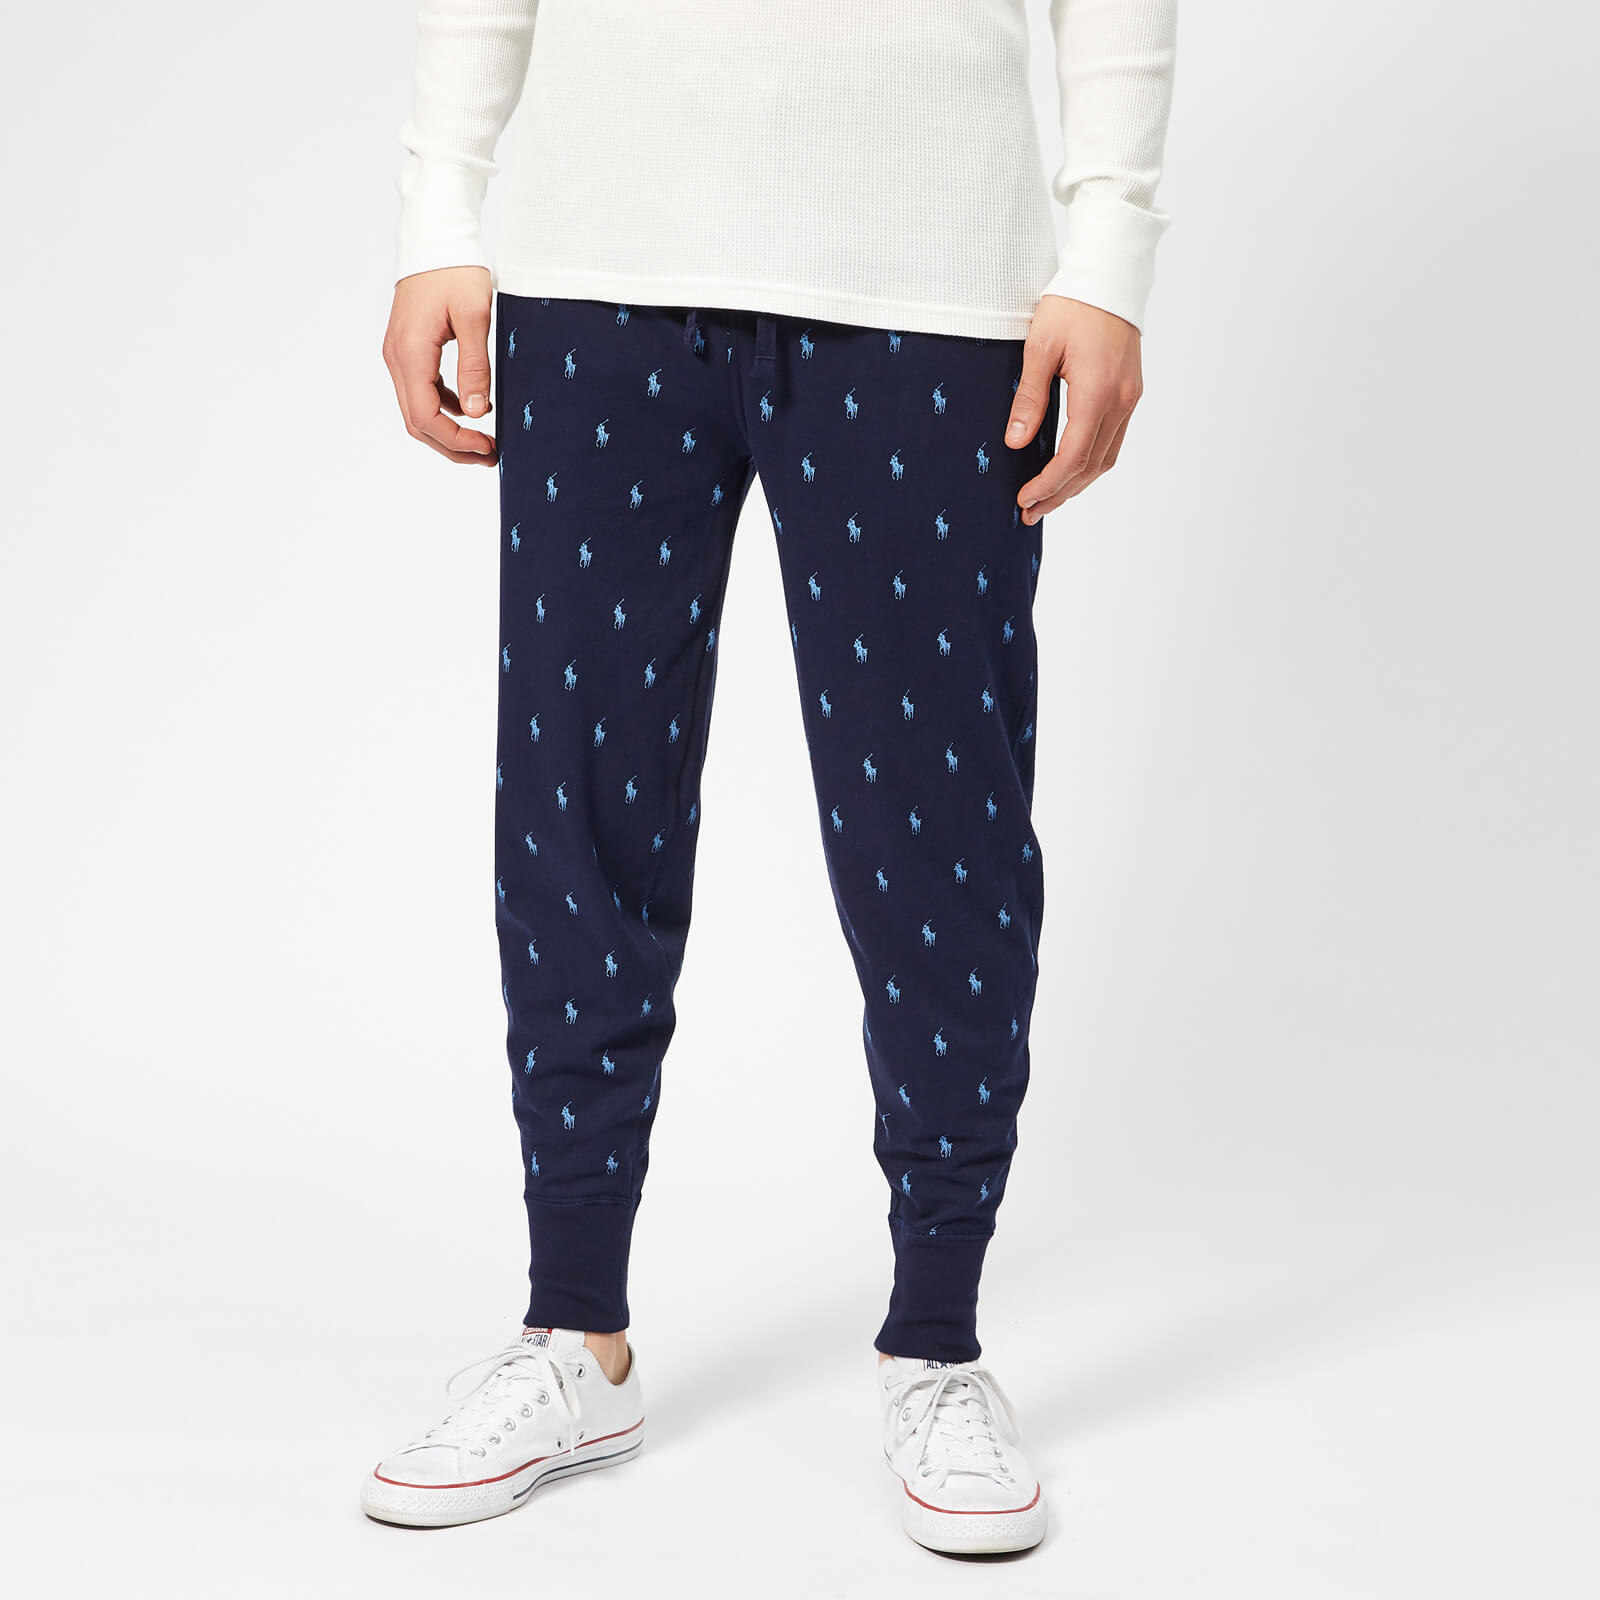 9c37f623 Polo Ralph Lauren Men's All Over Pony Joggers - Cruise Navy Clothing |  TheHut.com